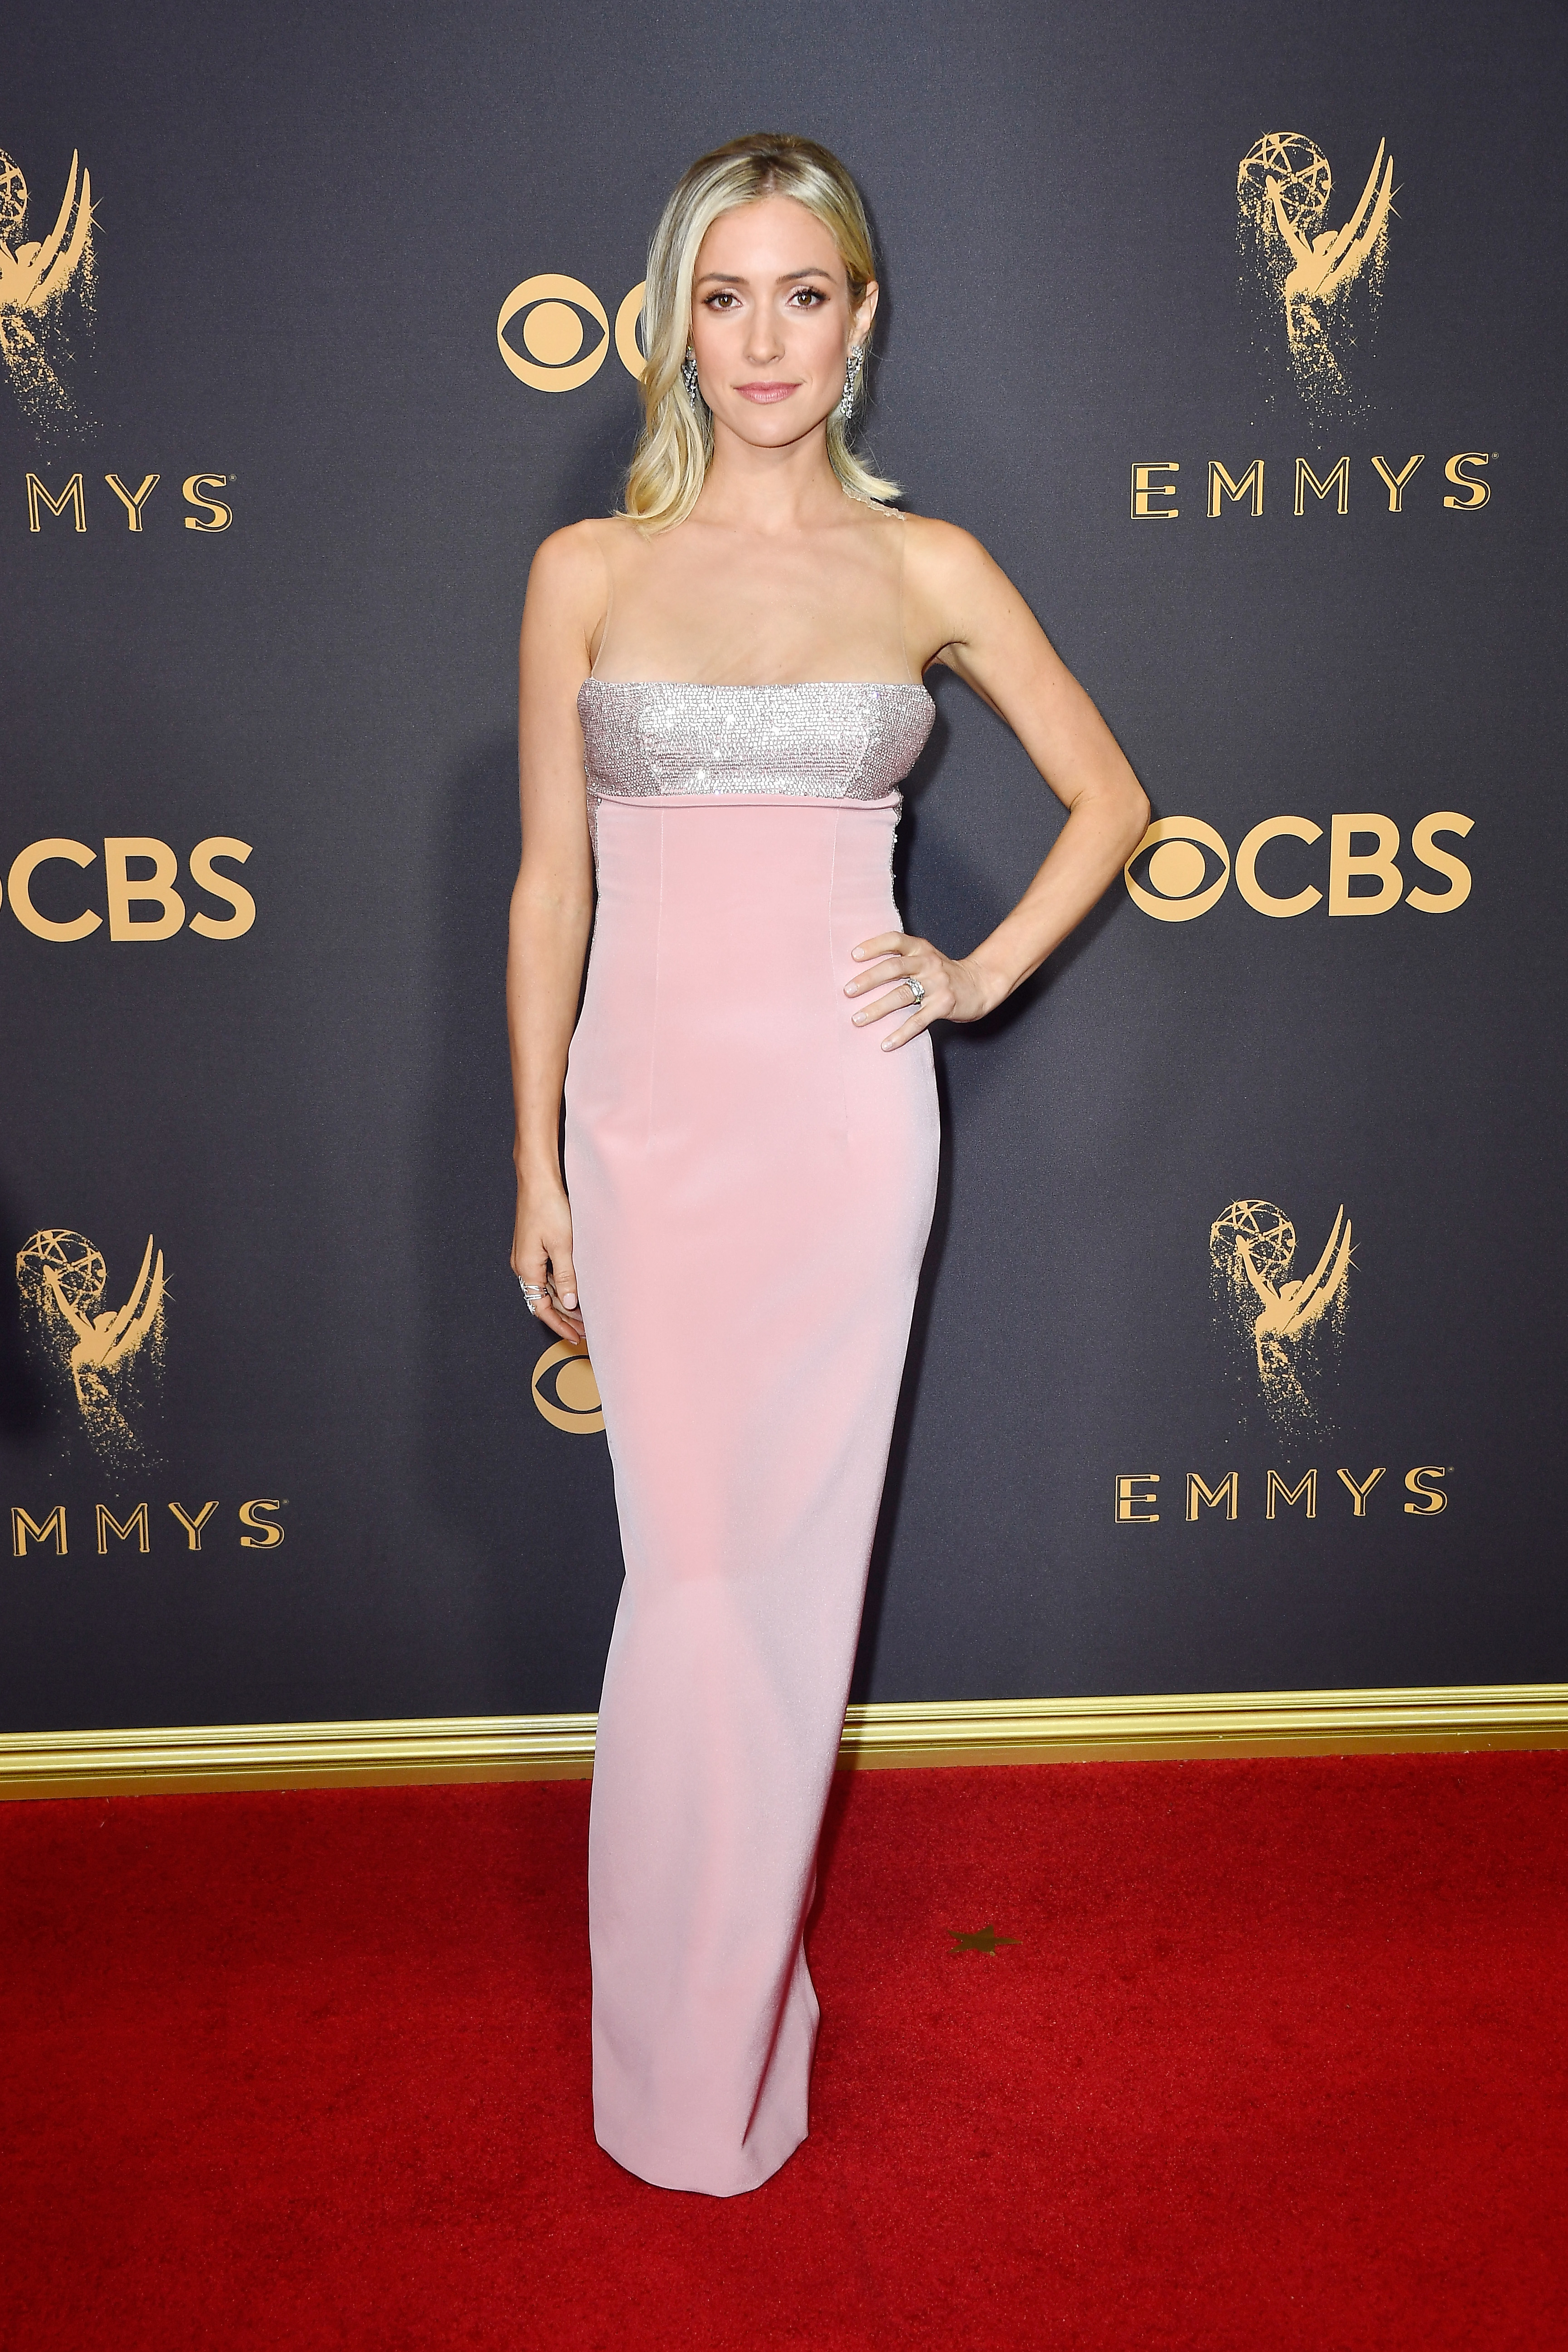 Kristin Cavallari attends the 69th Annual Primetime Emmy Awards at Microsoft Theater in Los Angeles on Sept. 17, 2017.